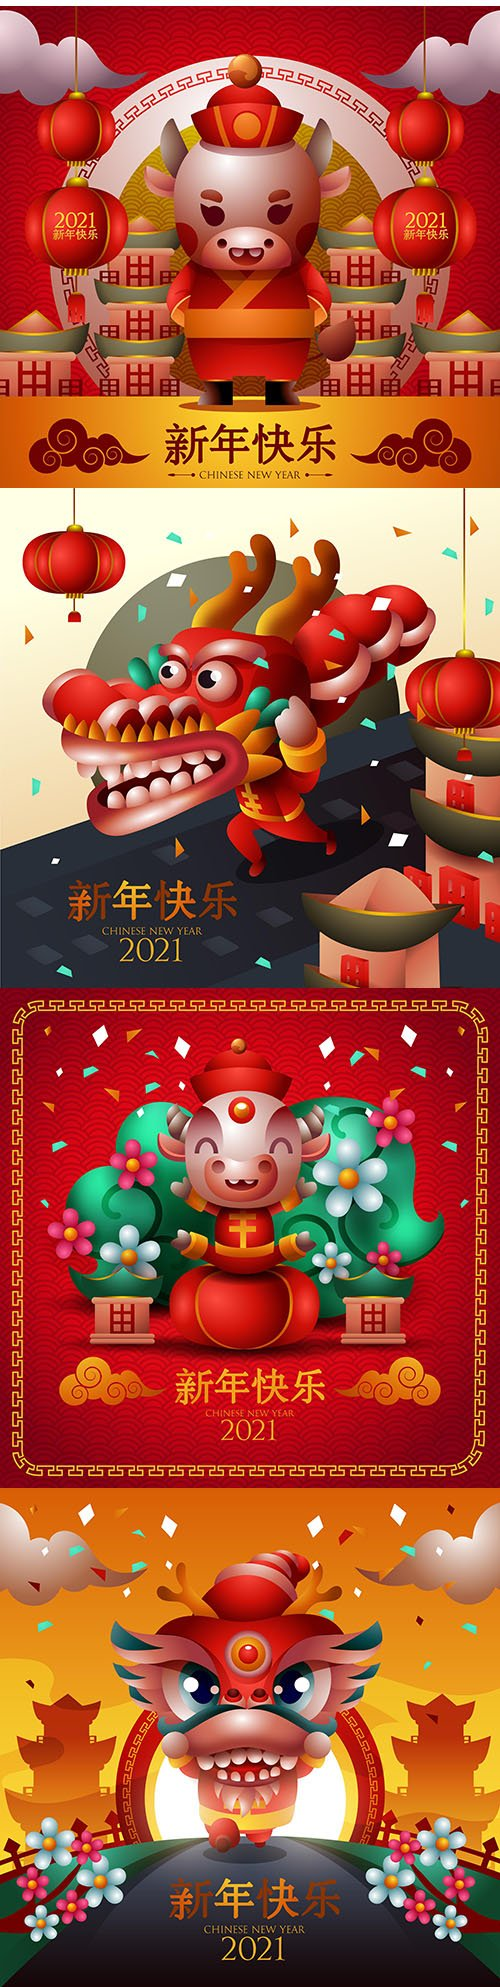 Happy Chinese New Year flower and lantern decorative design